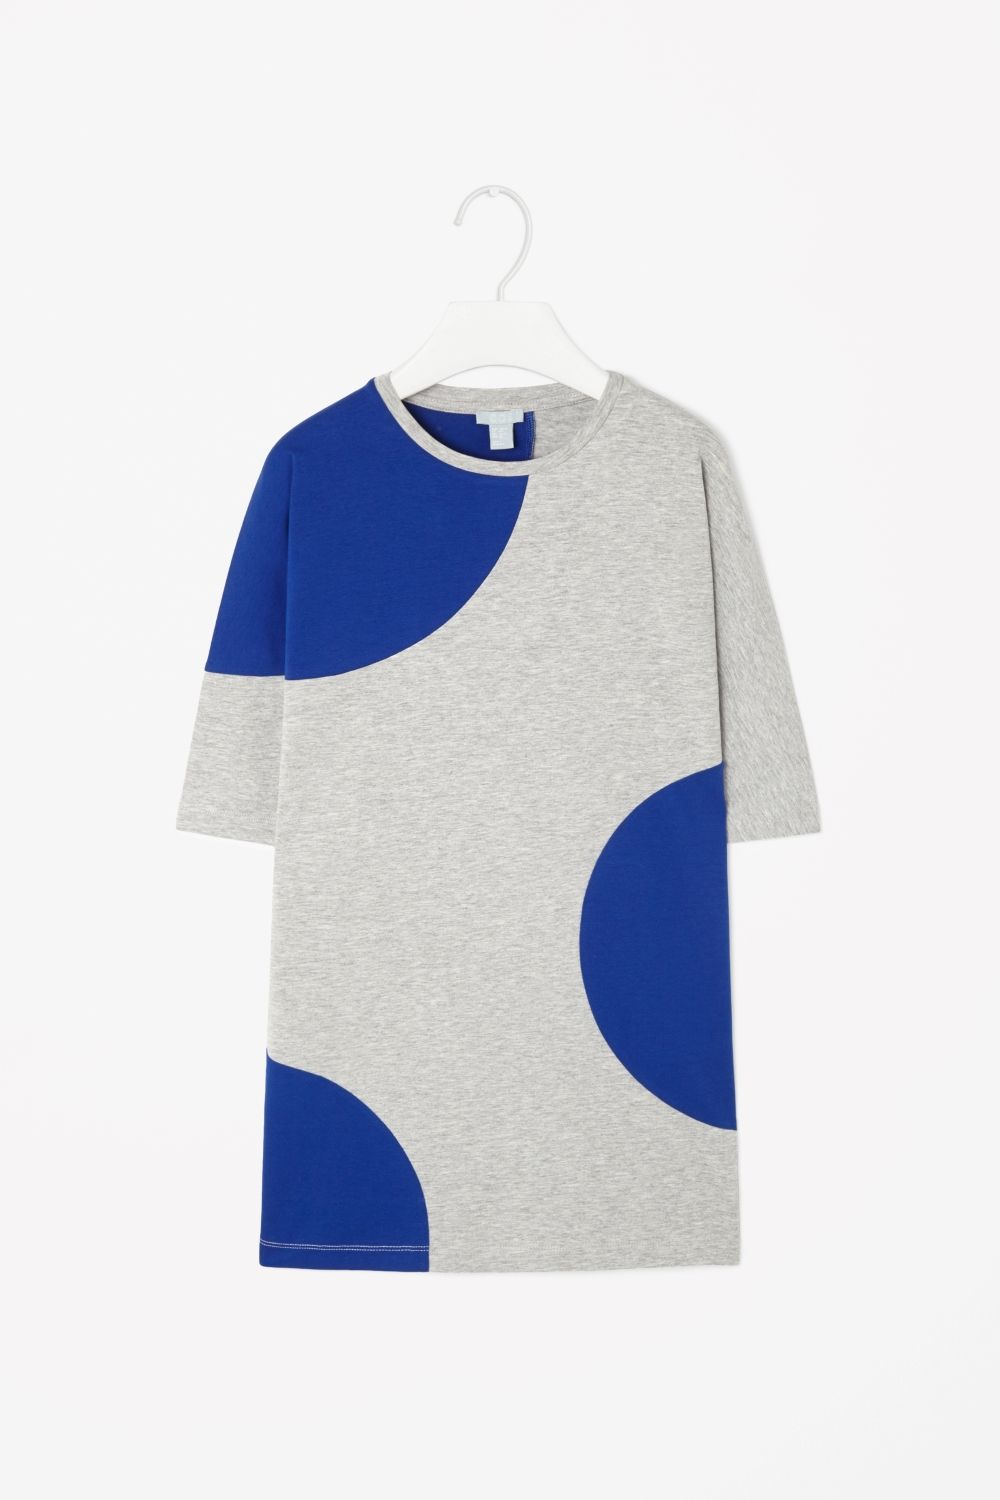 This long jersey dress has circleshape panels in bold block colour